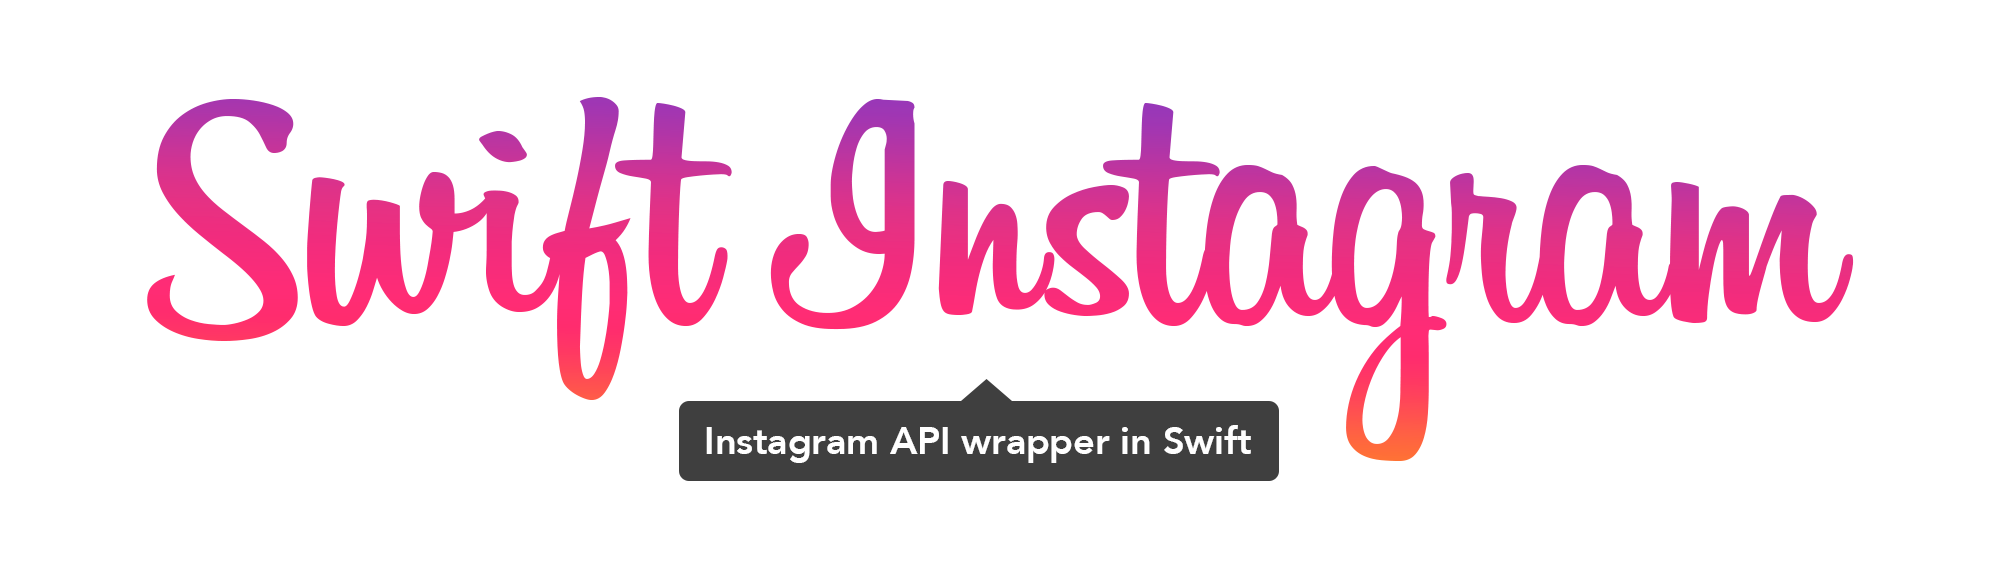 SwiftInstagram screenshot